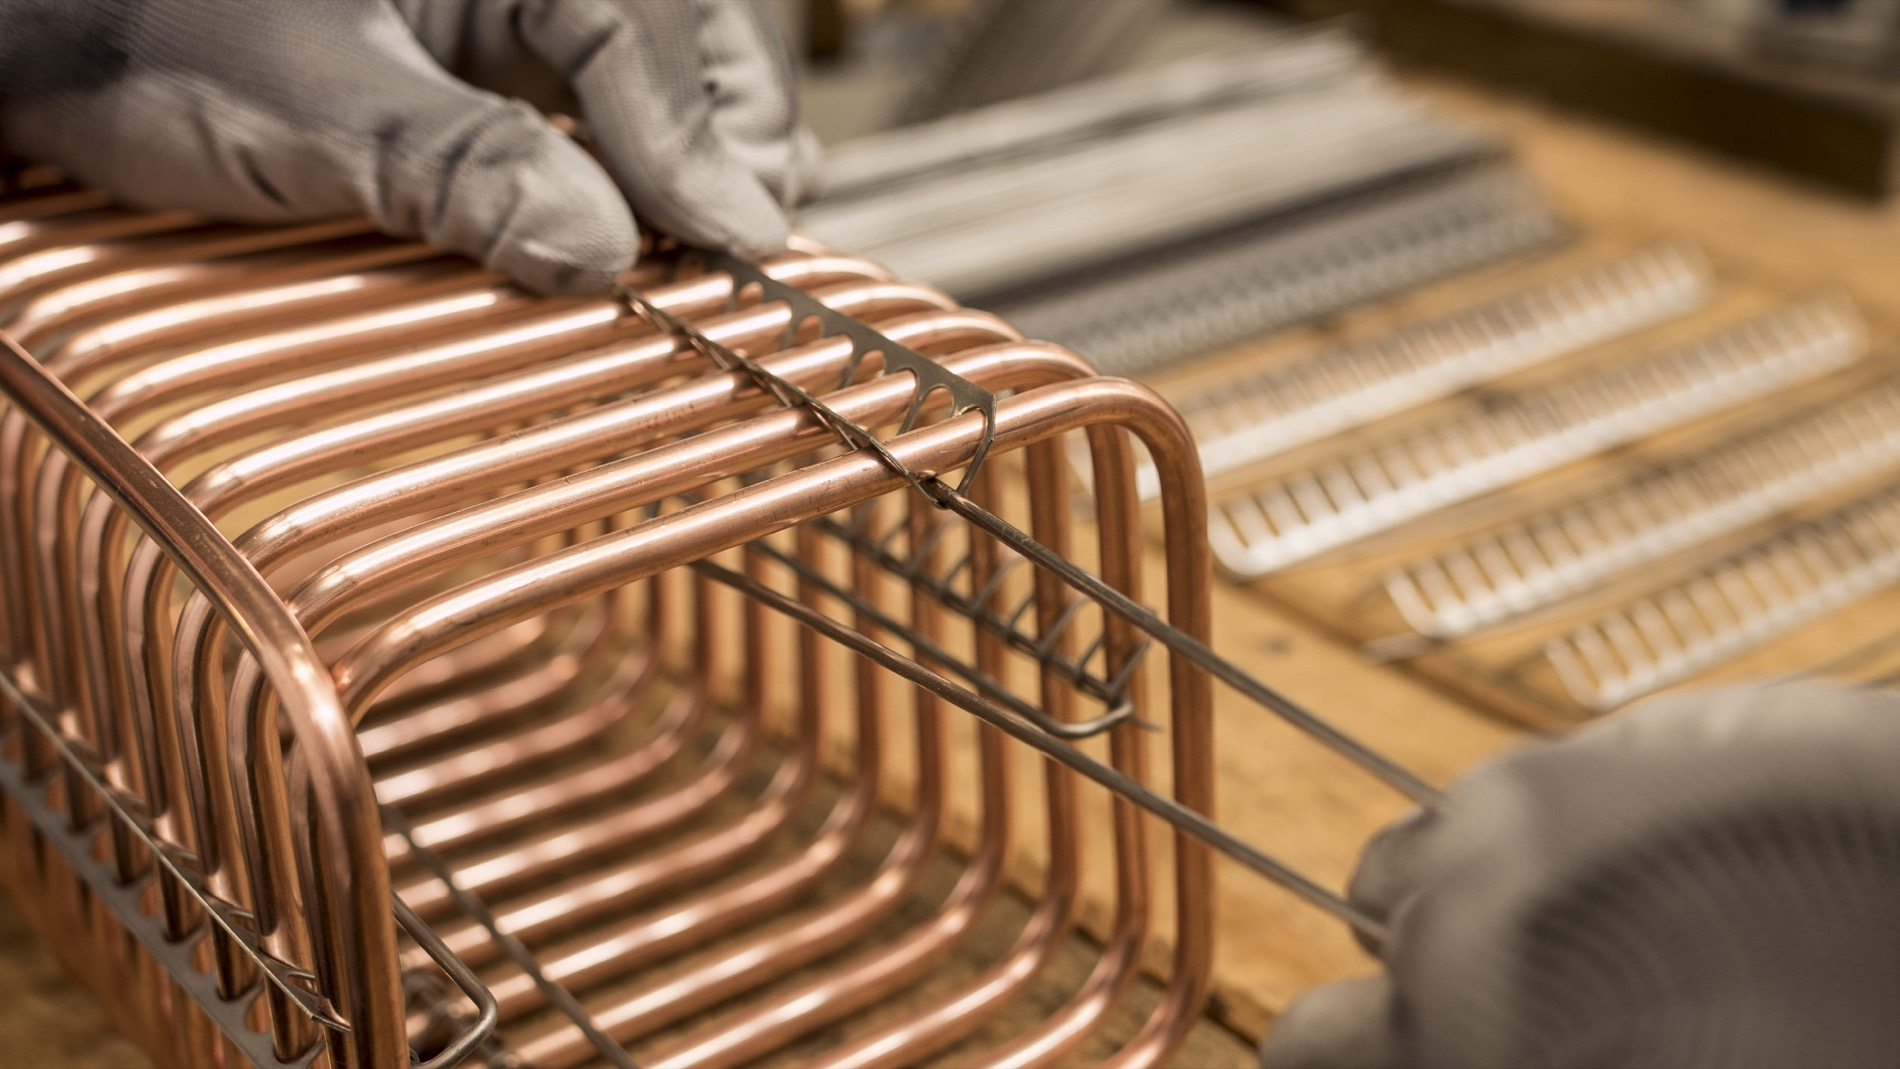 copper coil, assembling stainless steel spacer